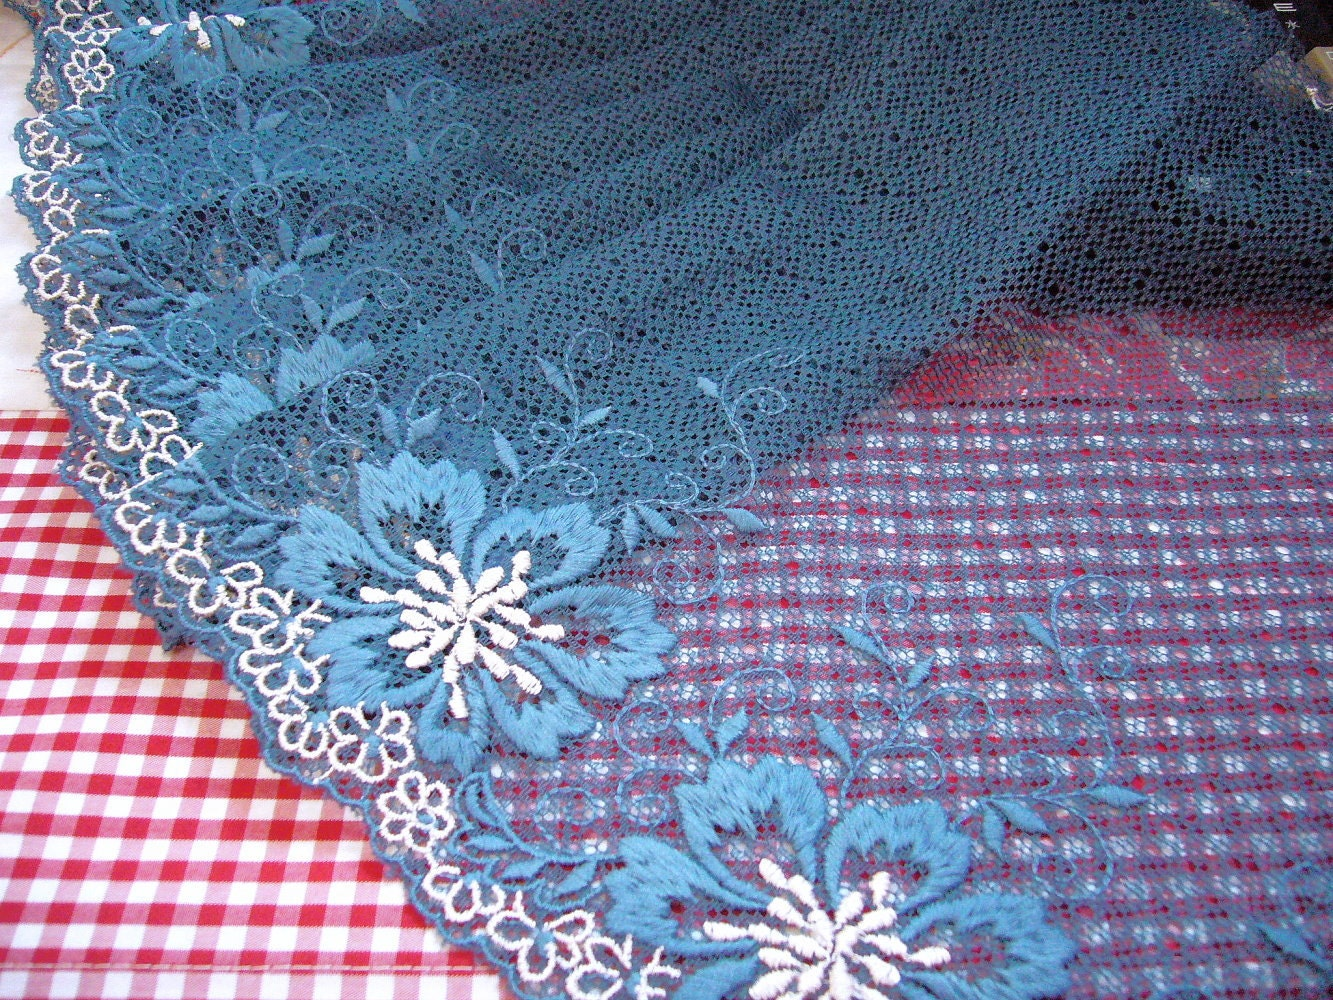 Lace trim embroidered tulle net fabric